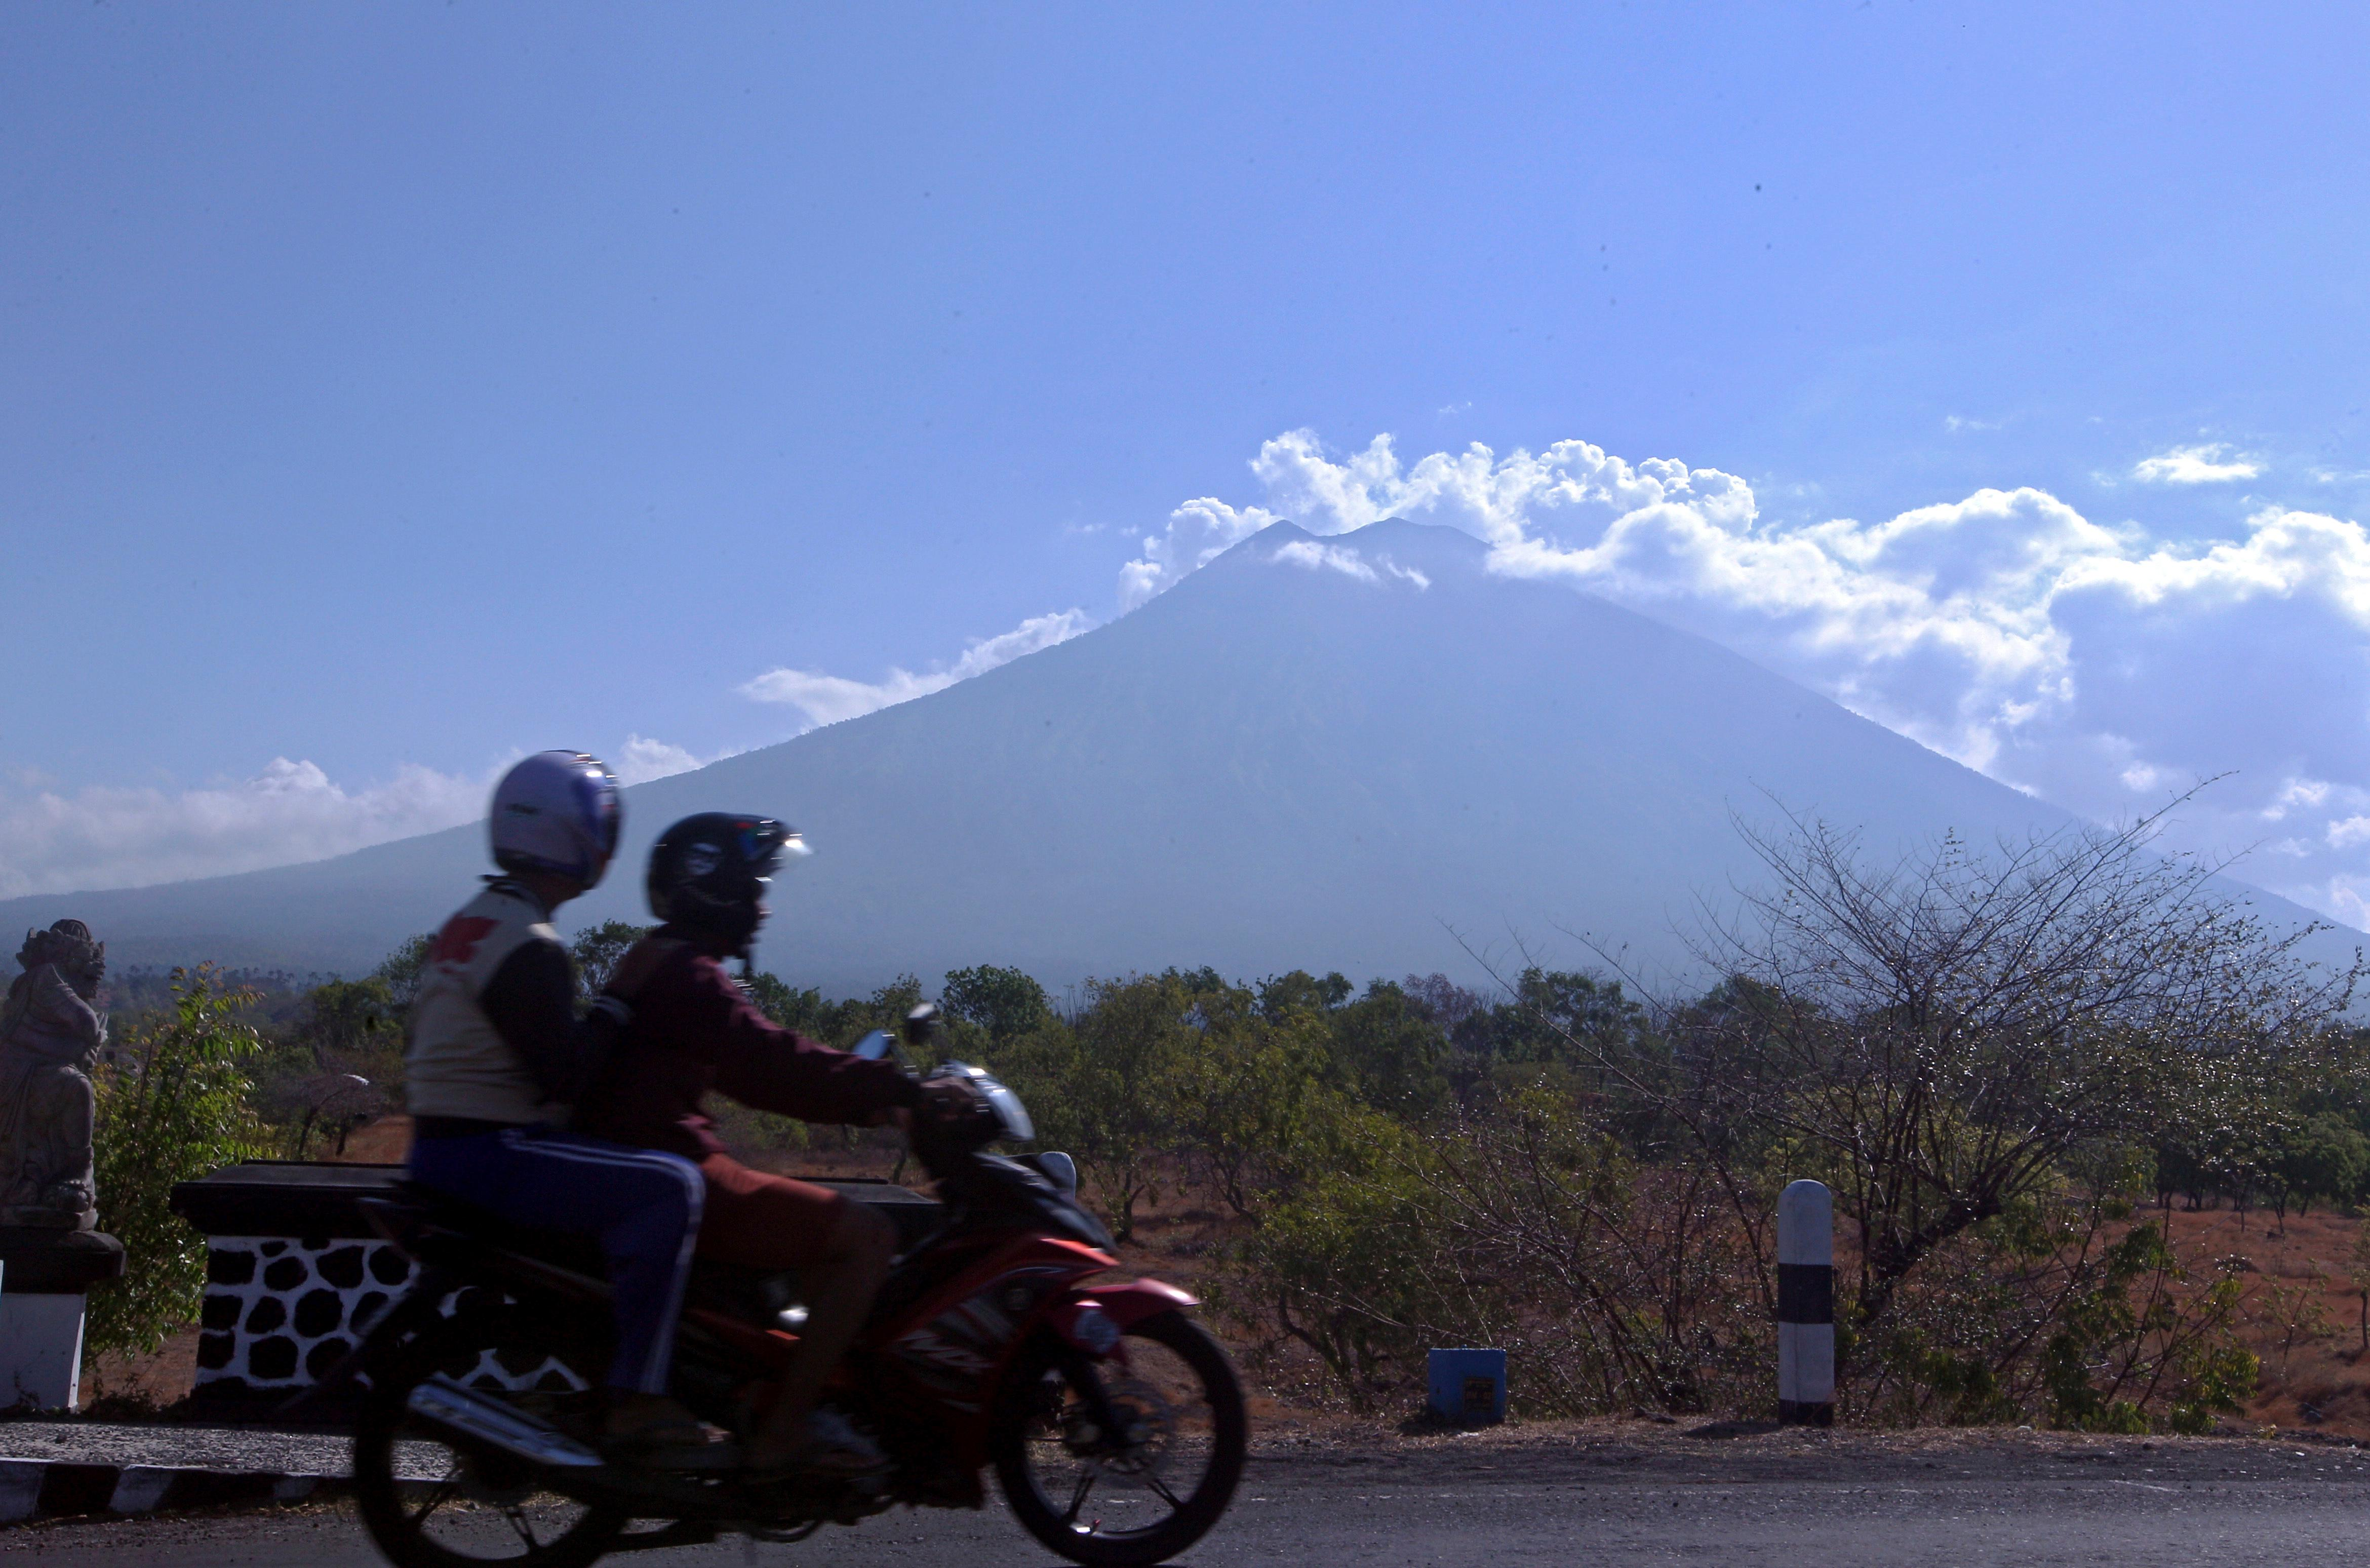 Motorists ride past by with Mount Agung volcano seen in the background in Karangasem, Bali, Indonesia, Thursday, Sept. 28, 2017. Warnings that the volcano on the tourist island will erupt have sparked an exodus as authorities have ordered the evacuation of villagers living within a high danger zone that in places extends 12 kilometers (7.5 miles) from its crater. (AP Photo/Firdia Lisnawati)